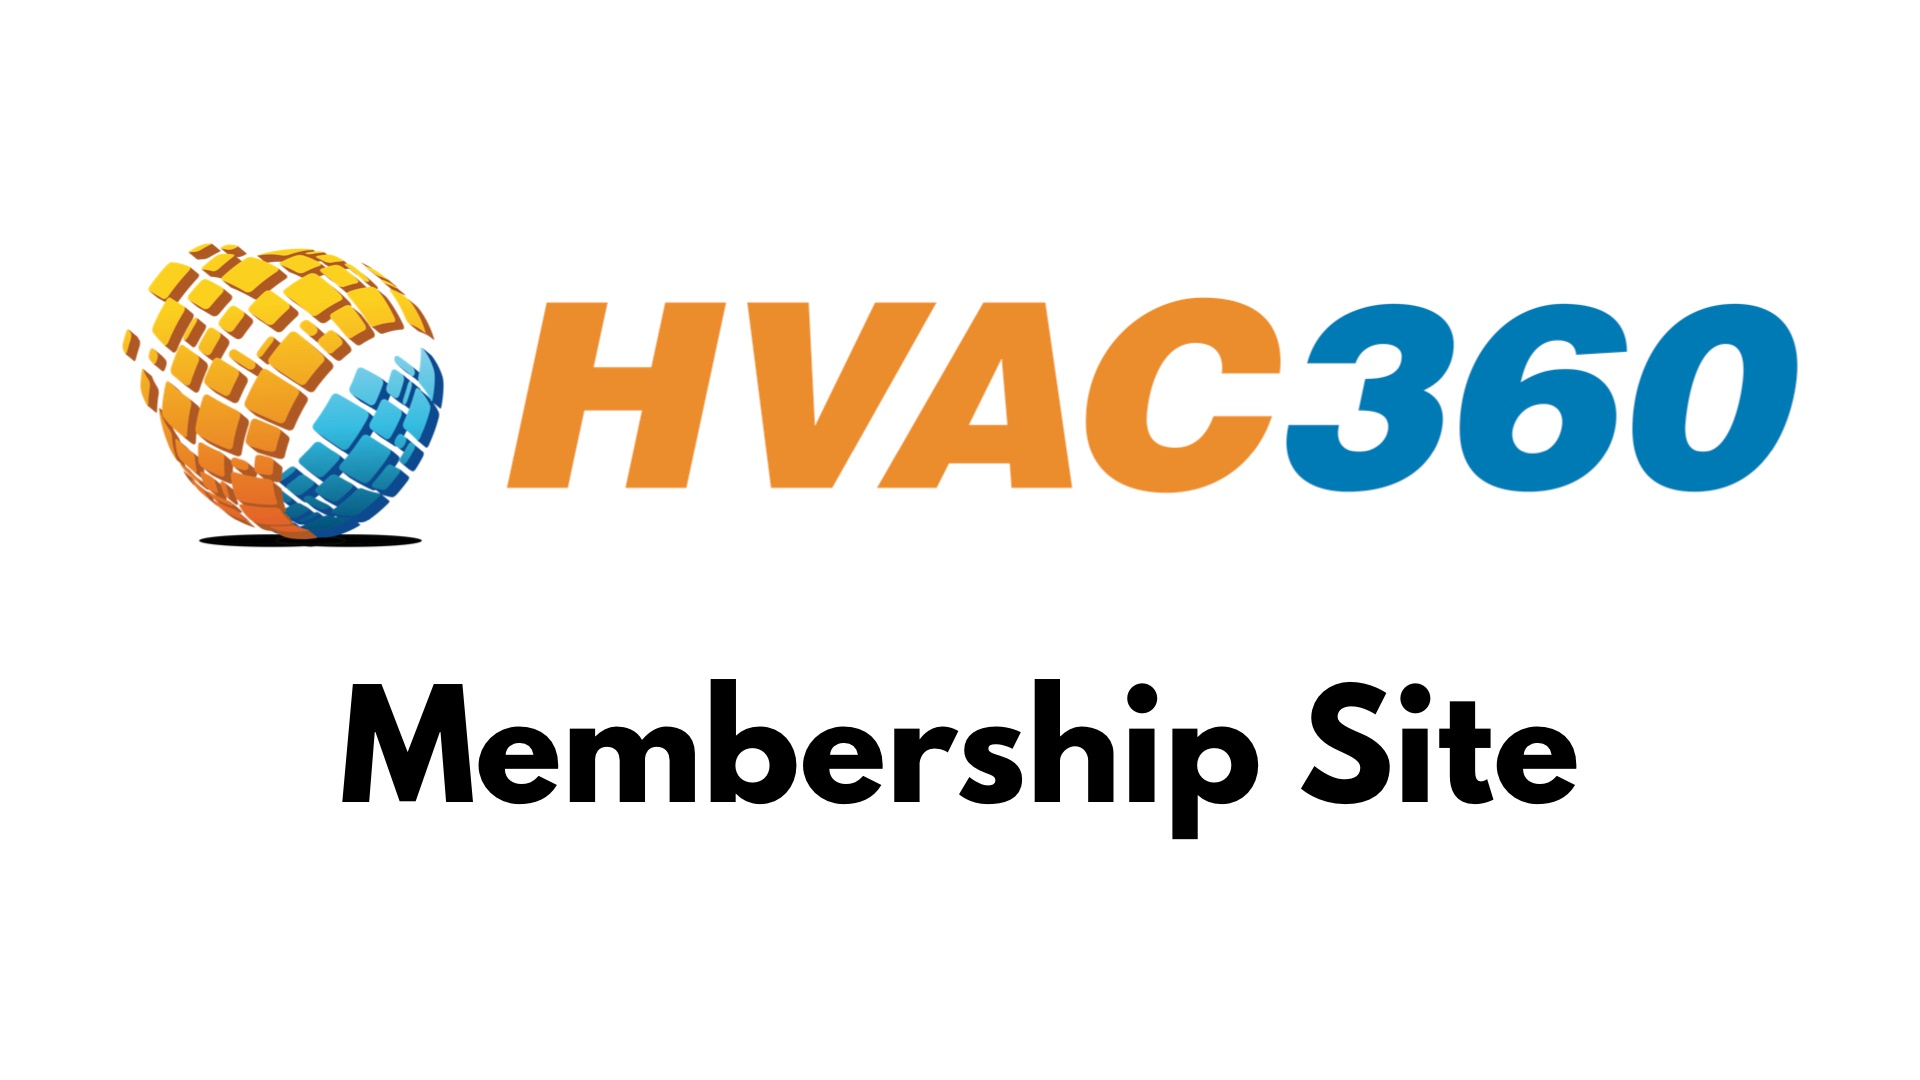 HVAC 360 Membership Site